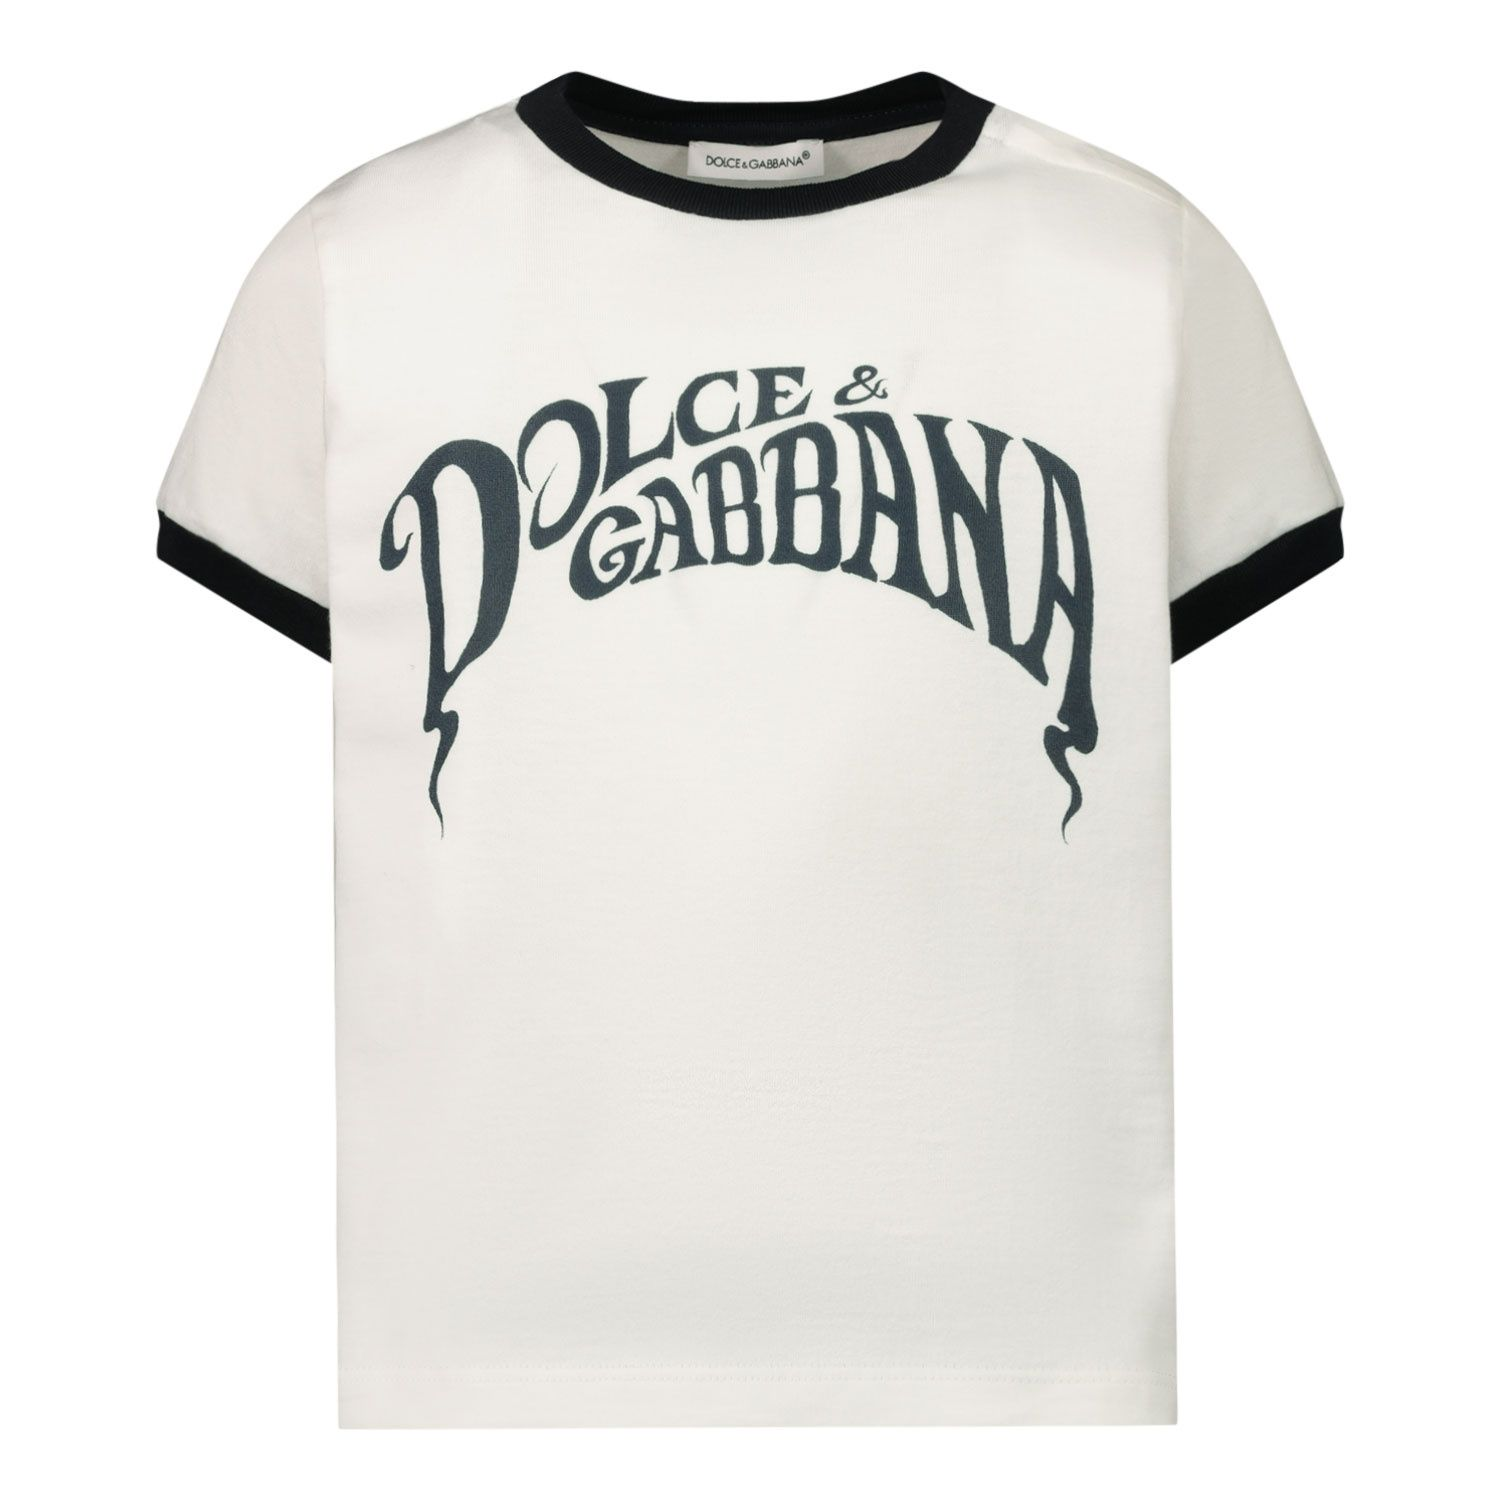 Picture of Dolce & Gabbana L1JT6M G7WRU baby shirt white